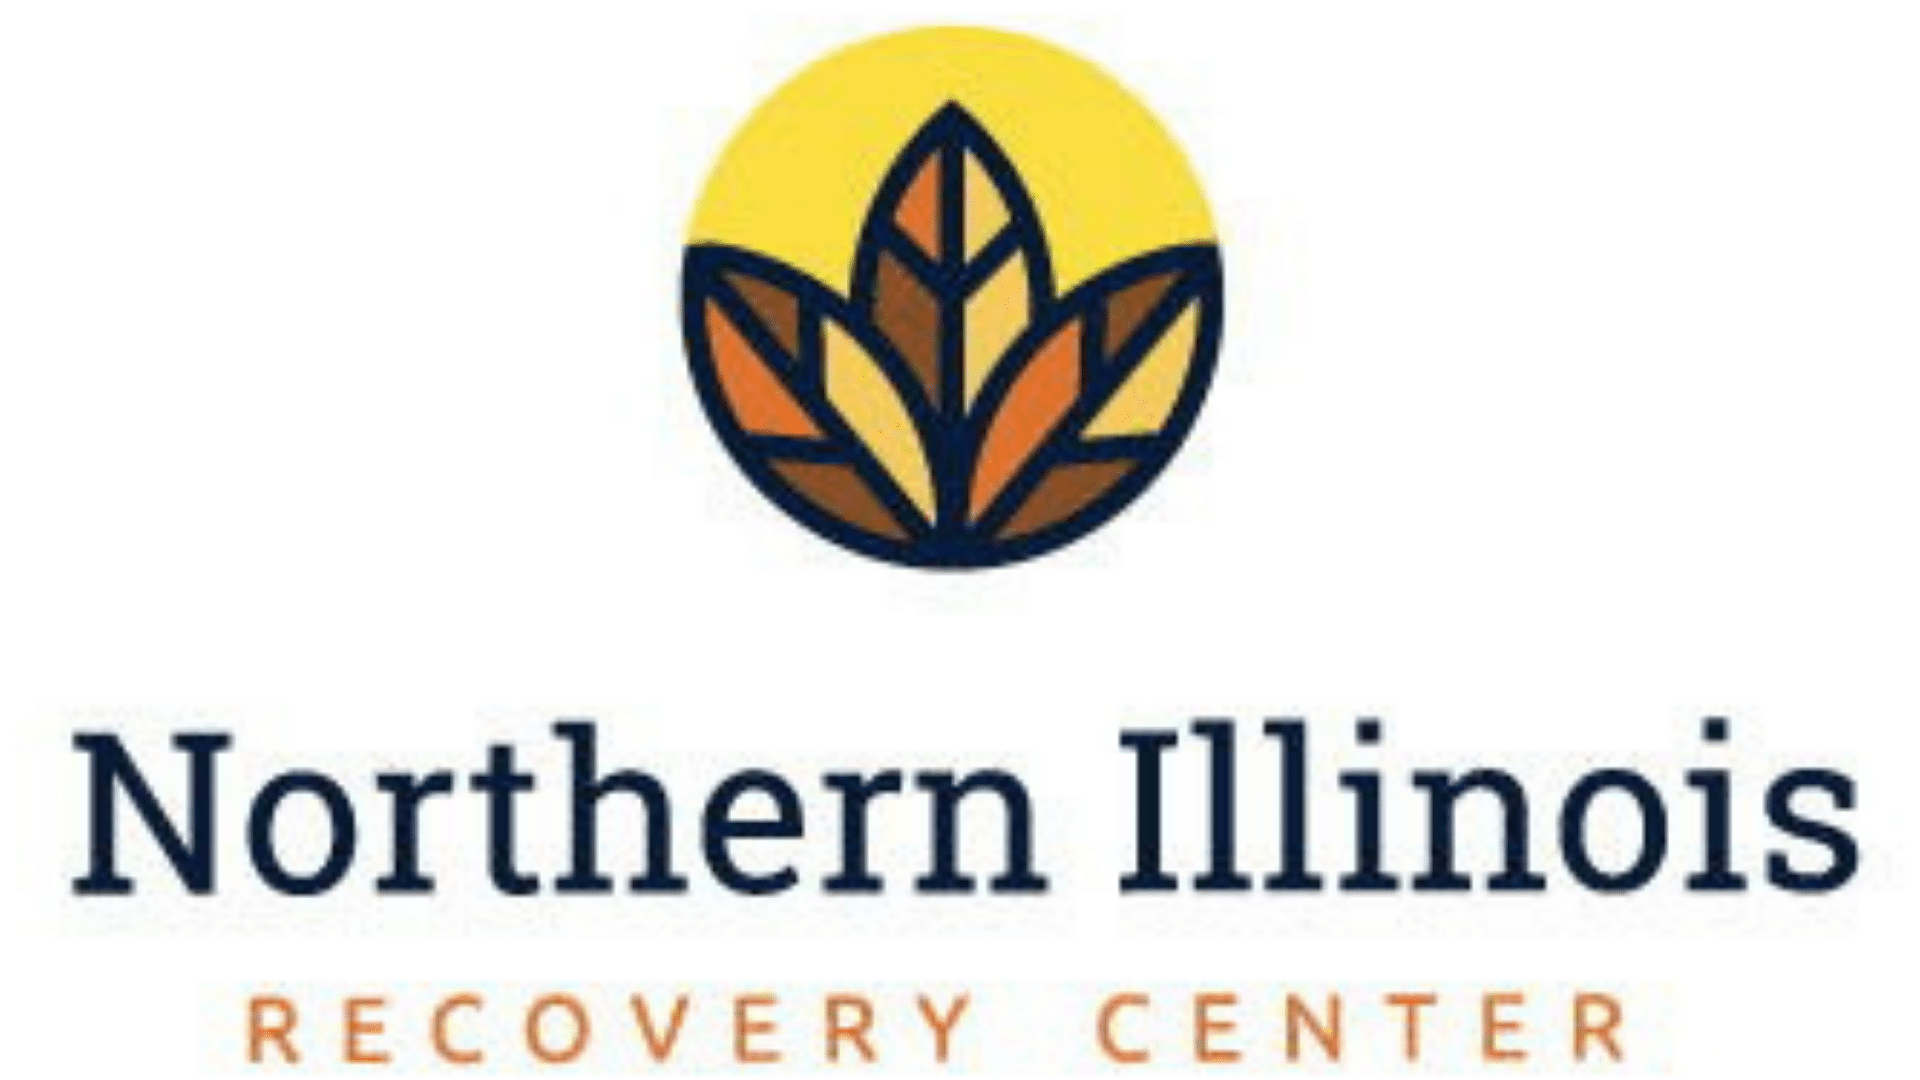 Northern Illinois Recovery Center